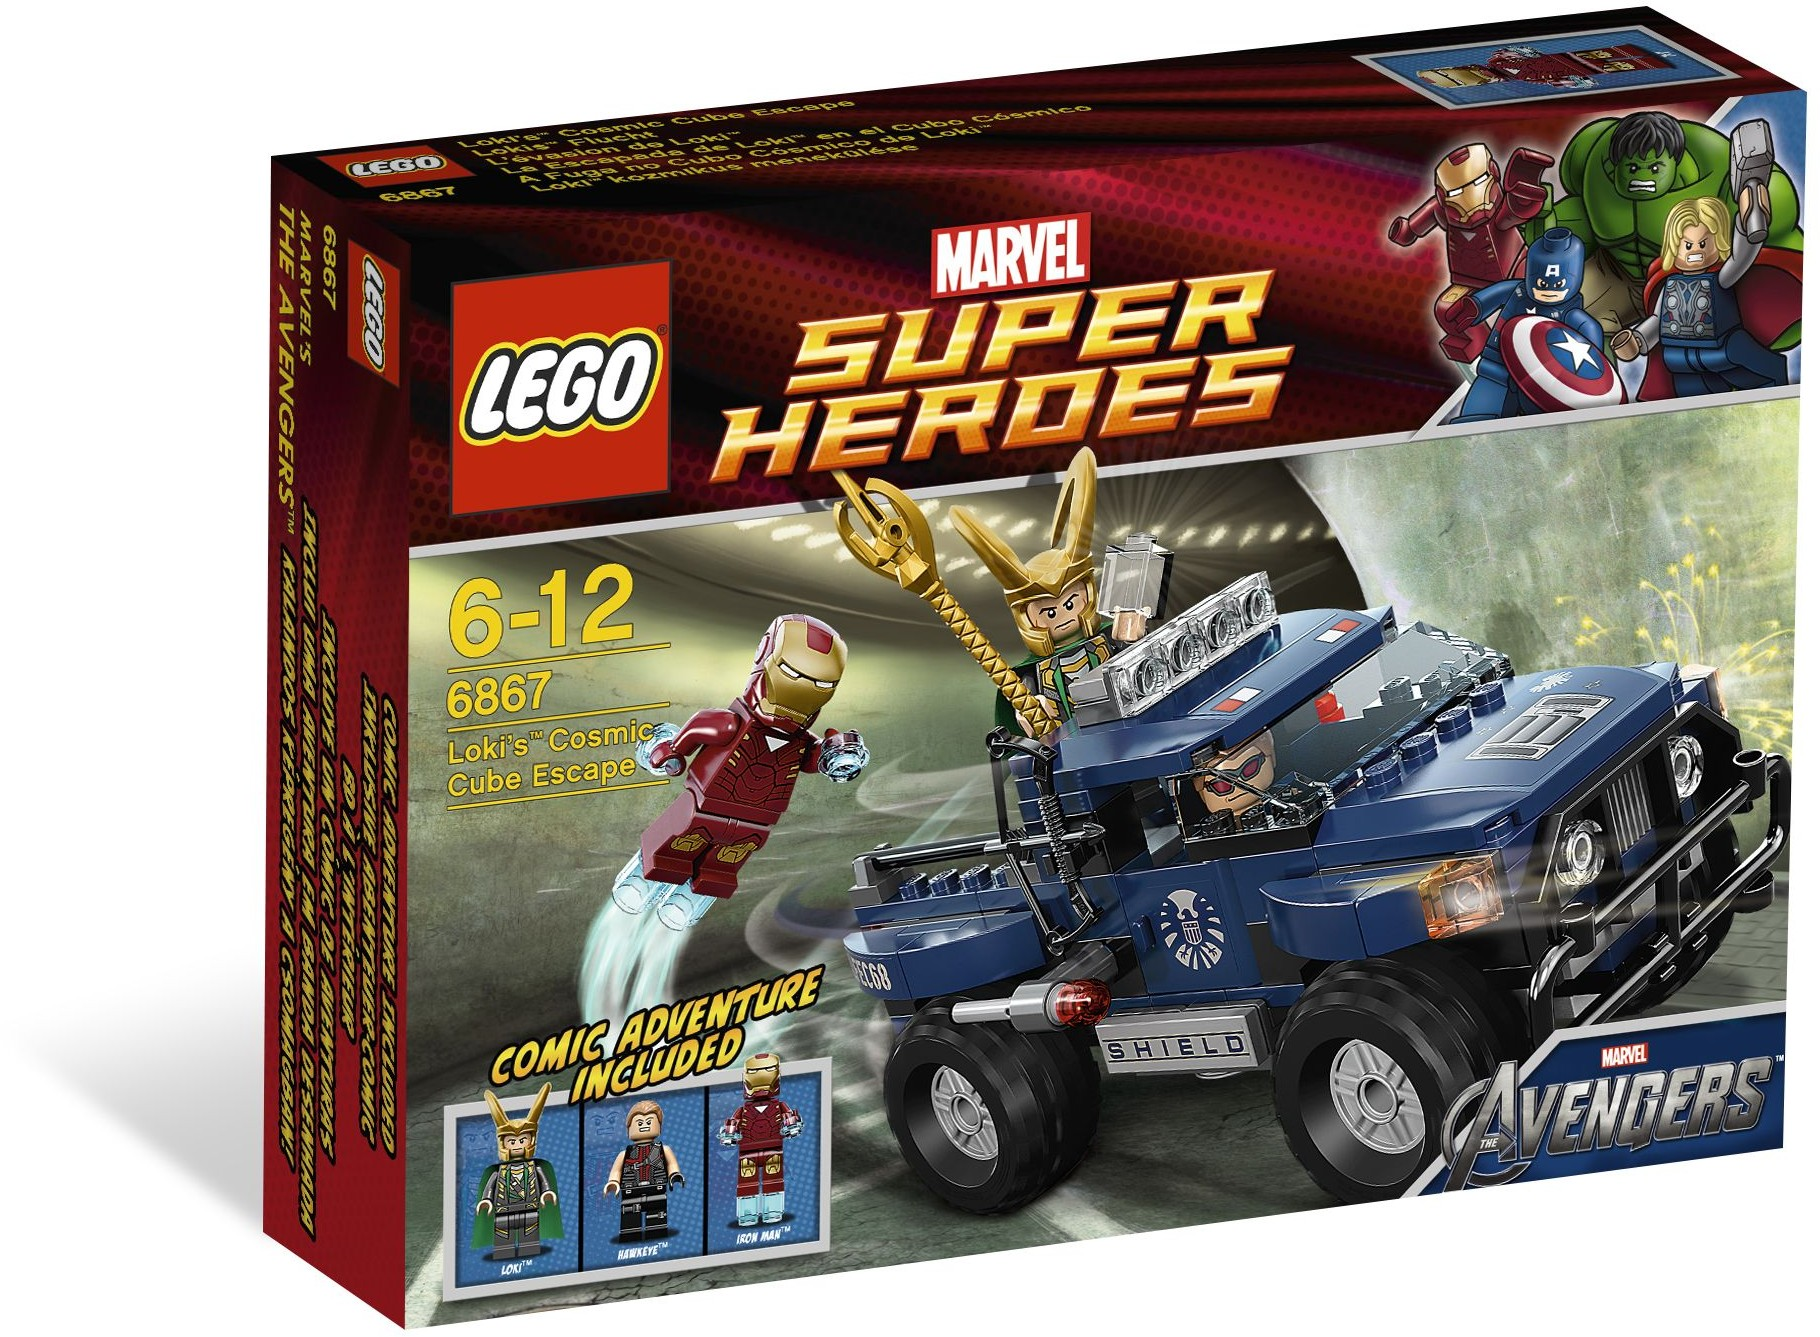 LEGO 6867 - Super Heroes - Loki's Cosmic Cube Escape